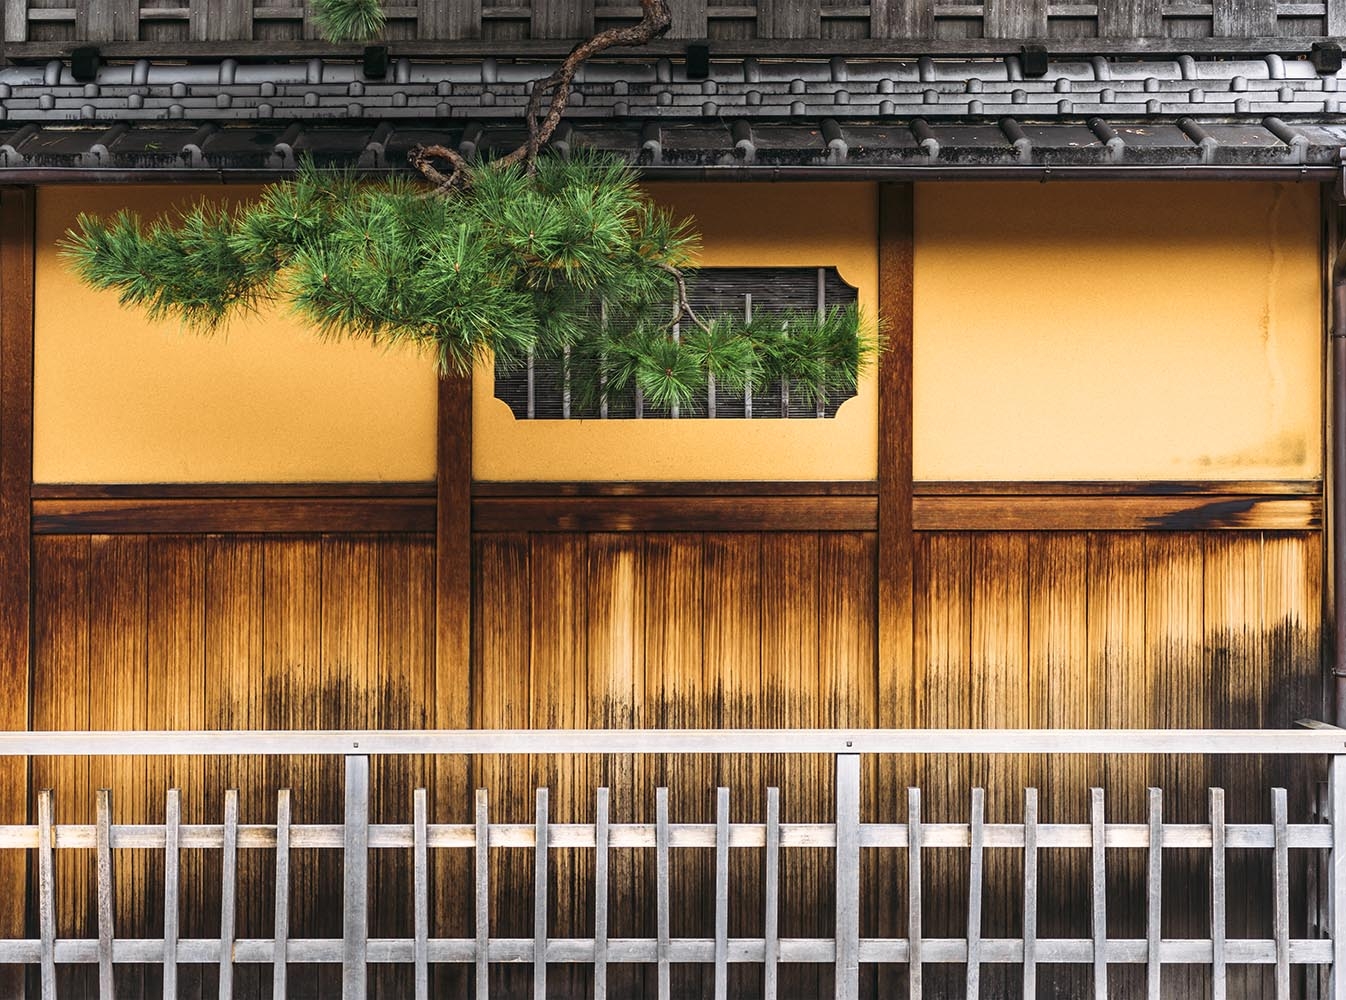 Wall of a traditional japanese house in Kyoto, Japan